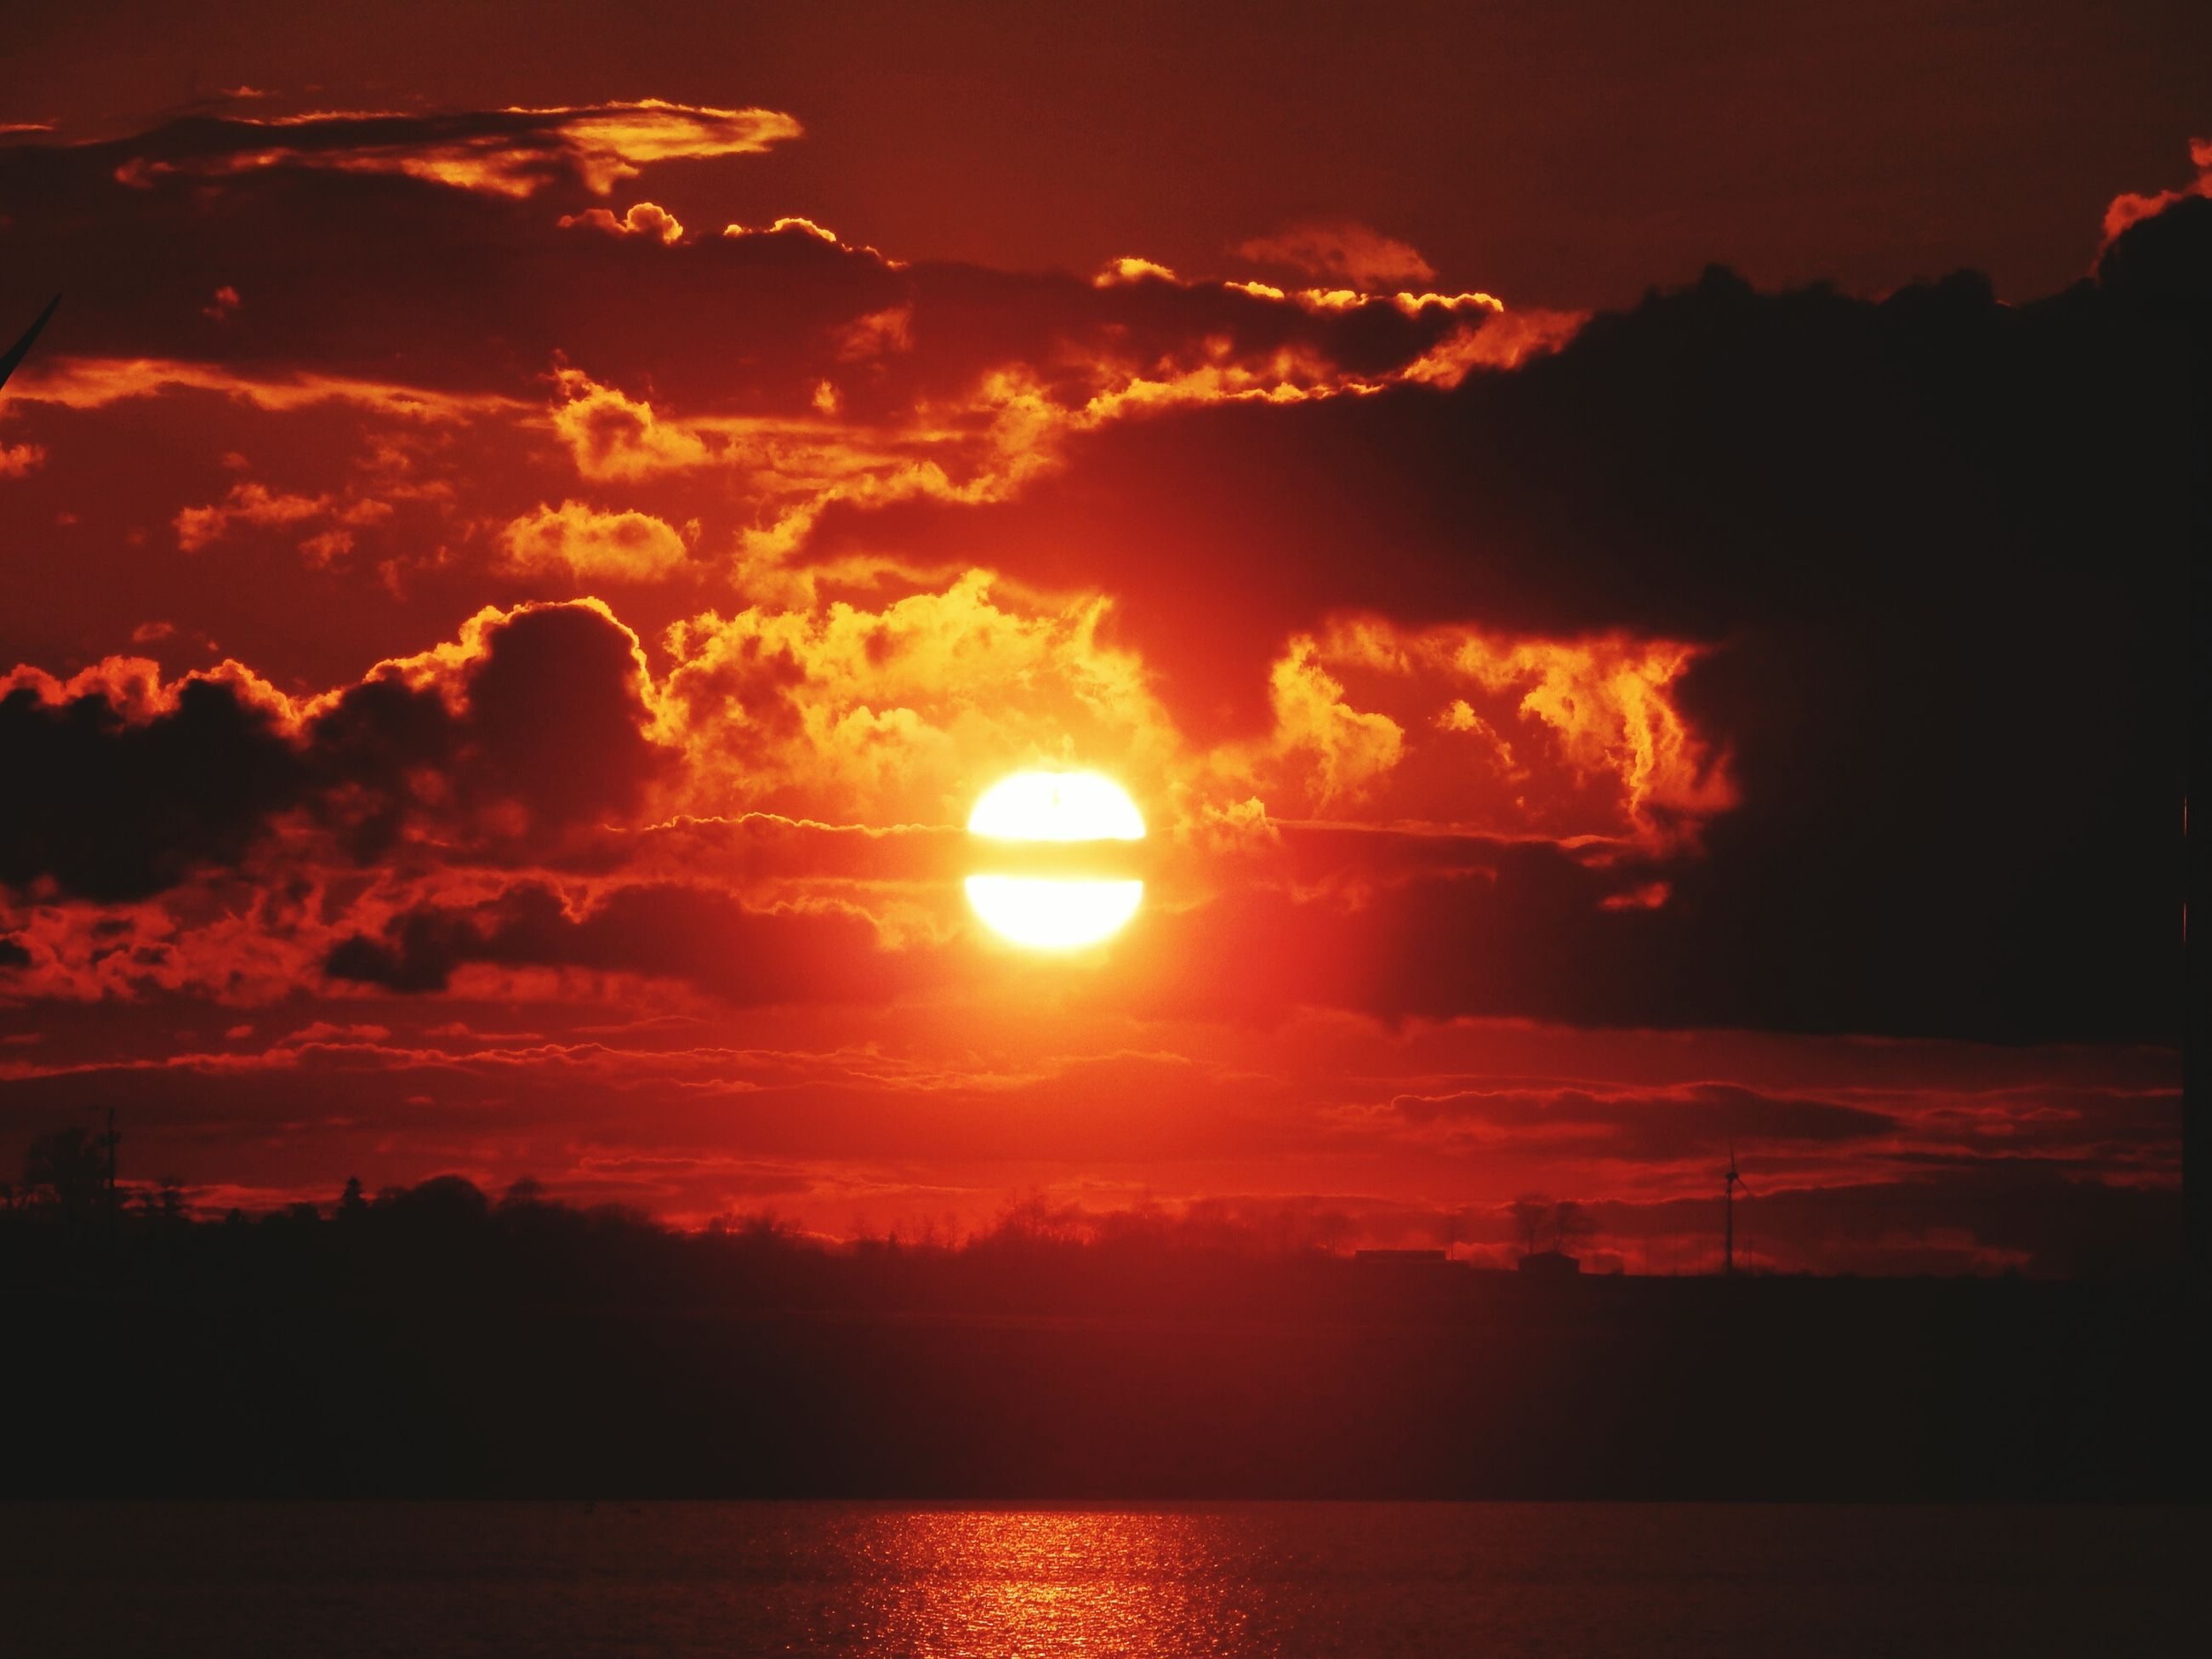 sunset, scenics, tranquil scene, sun, sky, beauty in nature, tranquility, water, silhouette, orange color, idyllic, cloud - sky, nature, reflection, cloud, dramatic sky, waterfront, sea, sunlight, lake